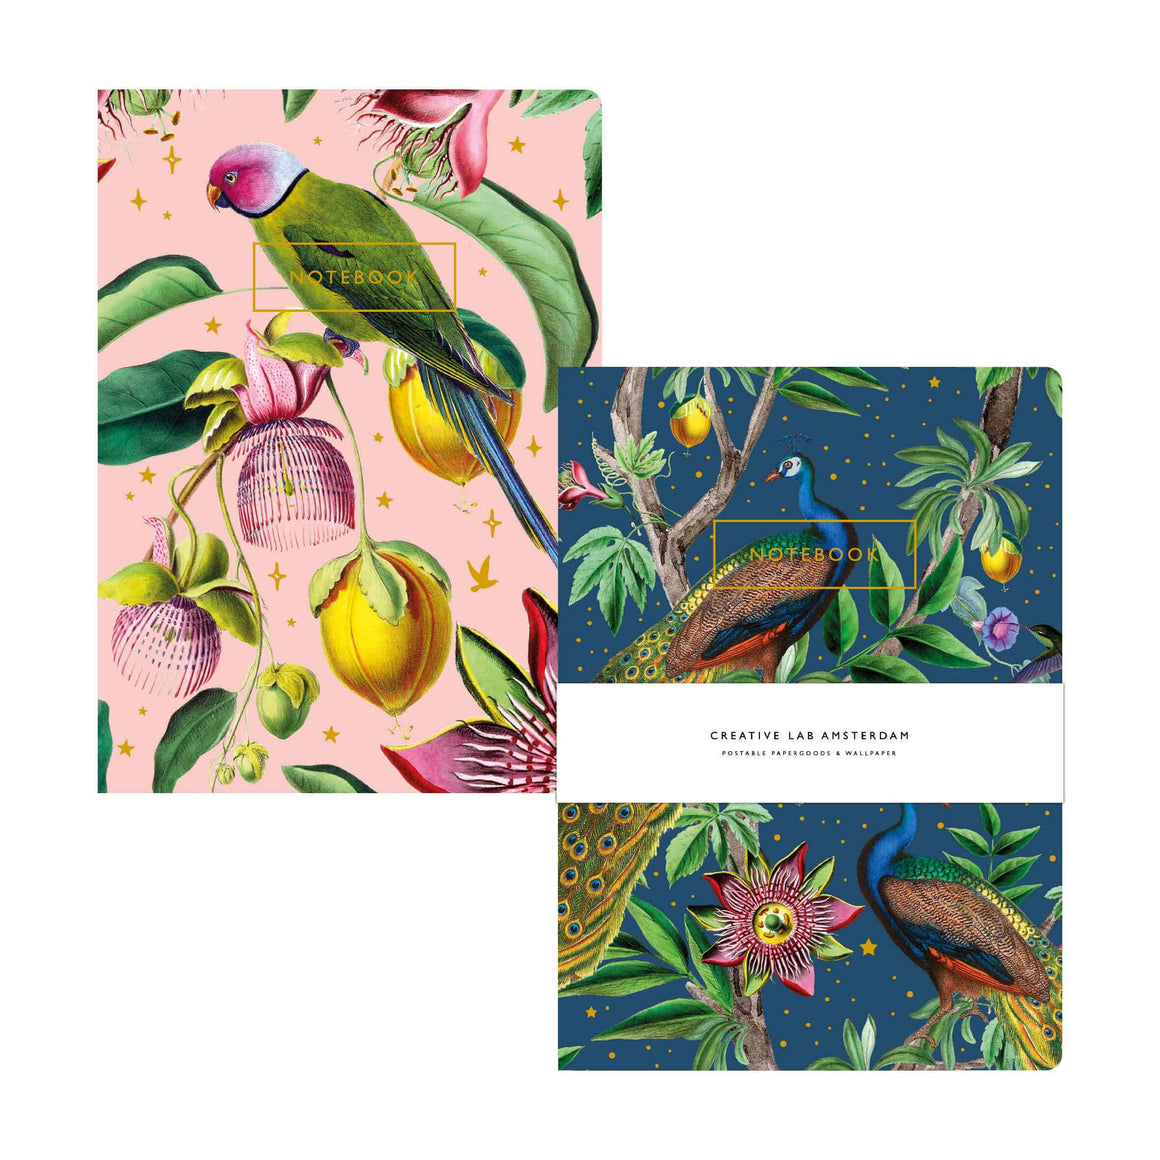 Conjunto 2x Notebook Passion Peacock/Botanic Garden